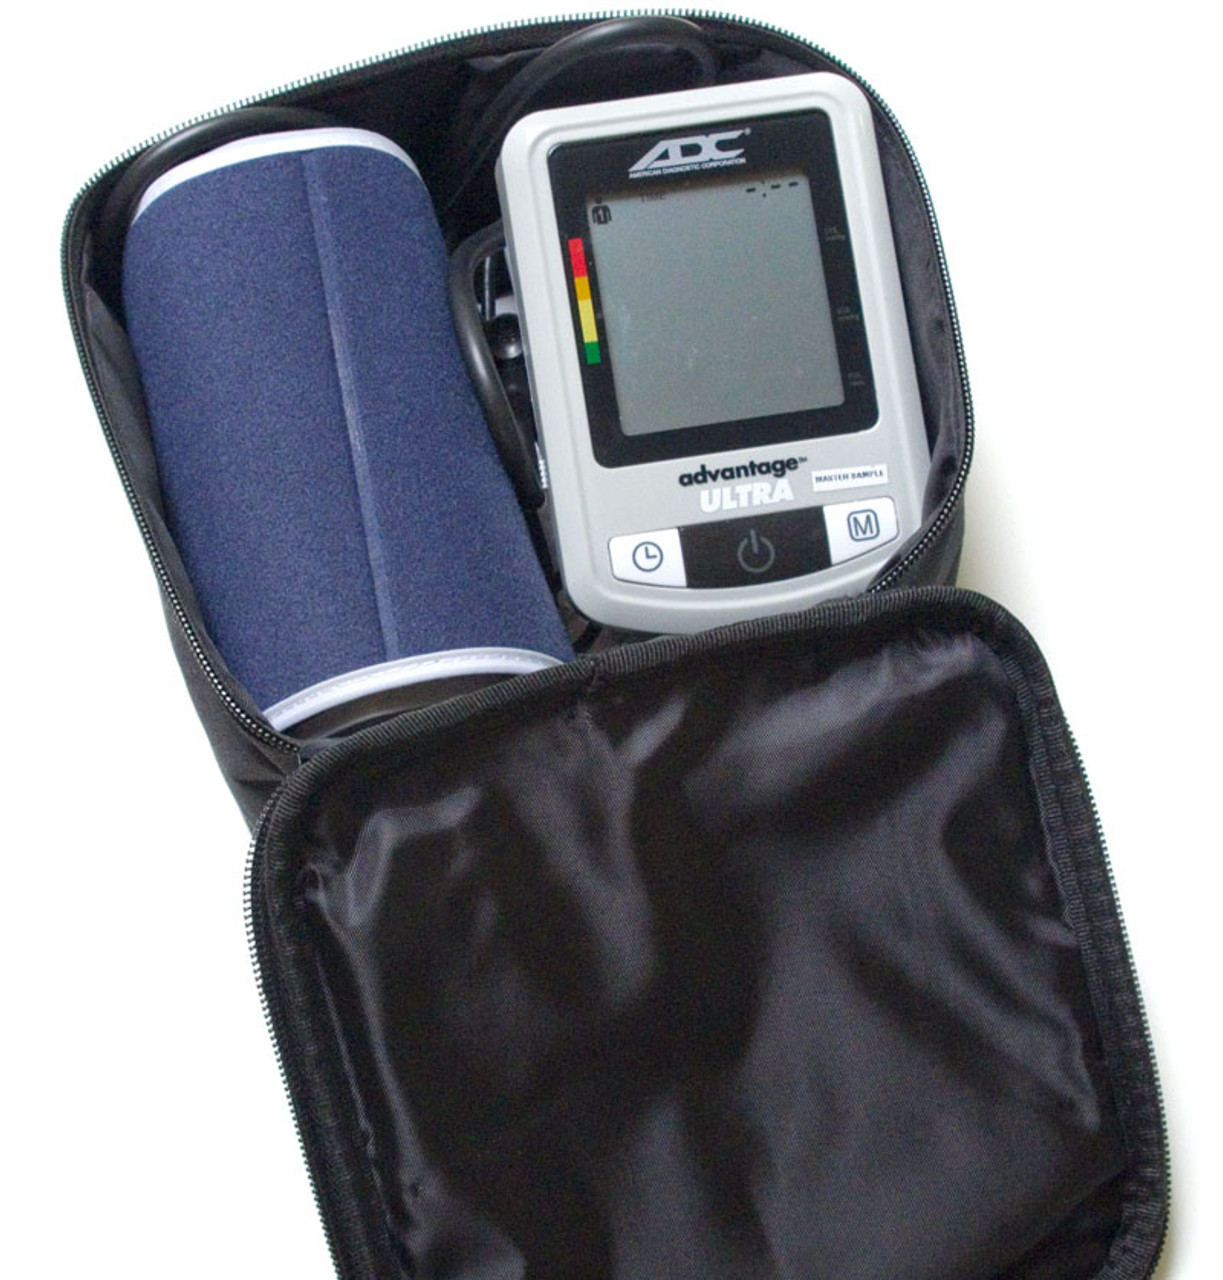 ADC 6023N Advantage Ultra Advanced BP Monitor